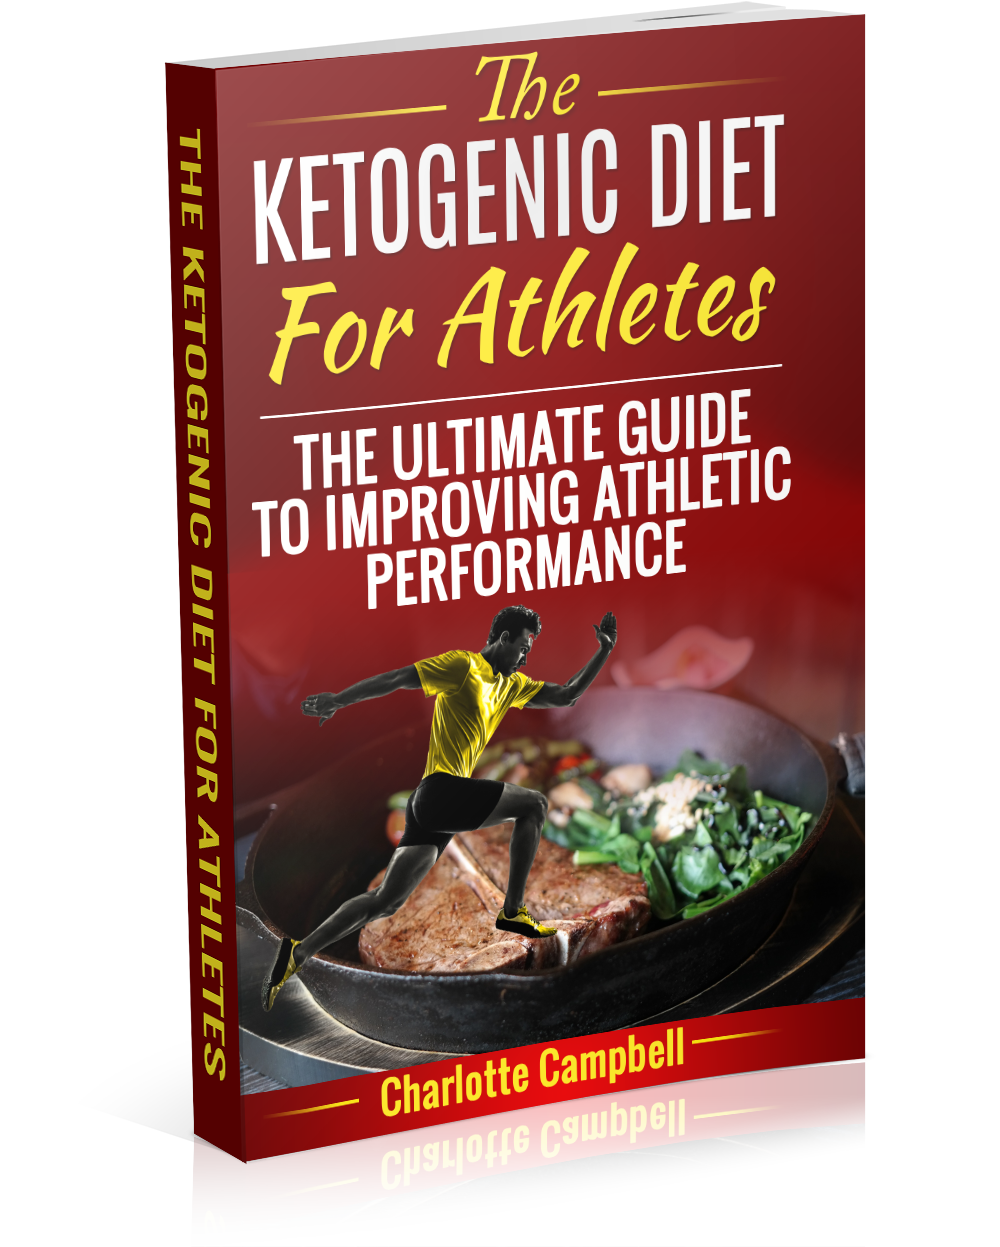 Ketogenic Diet Endurance Athlete | All Articles about Ketogenic Diet